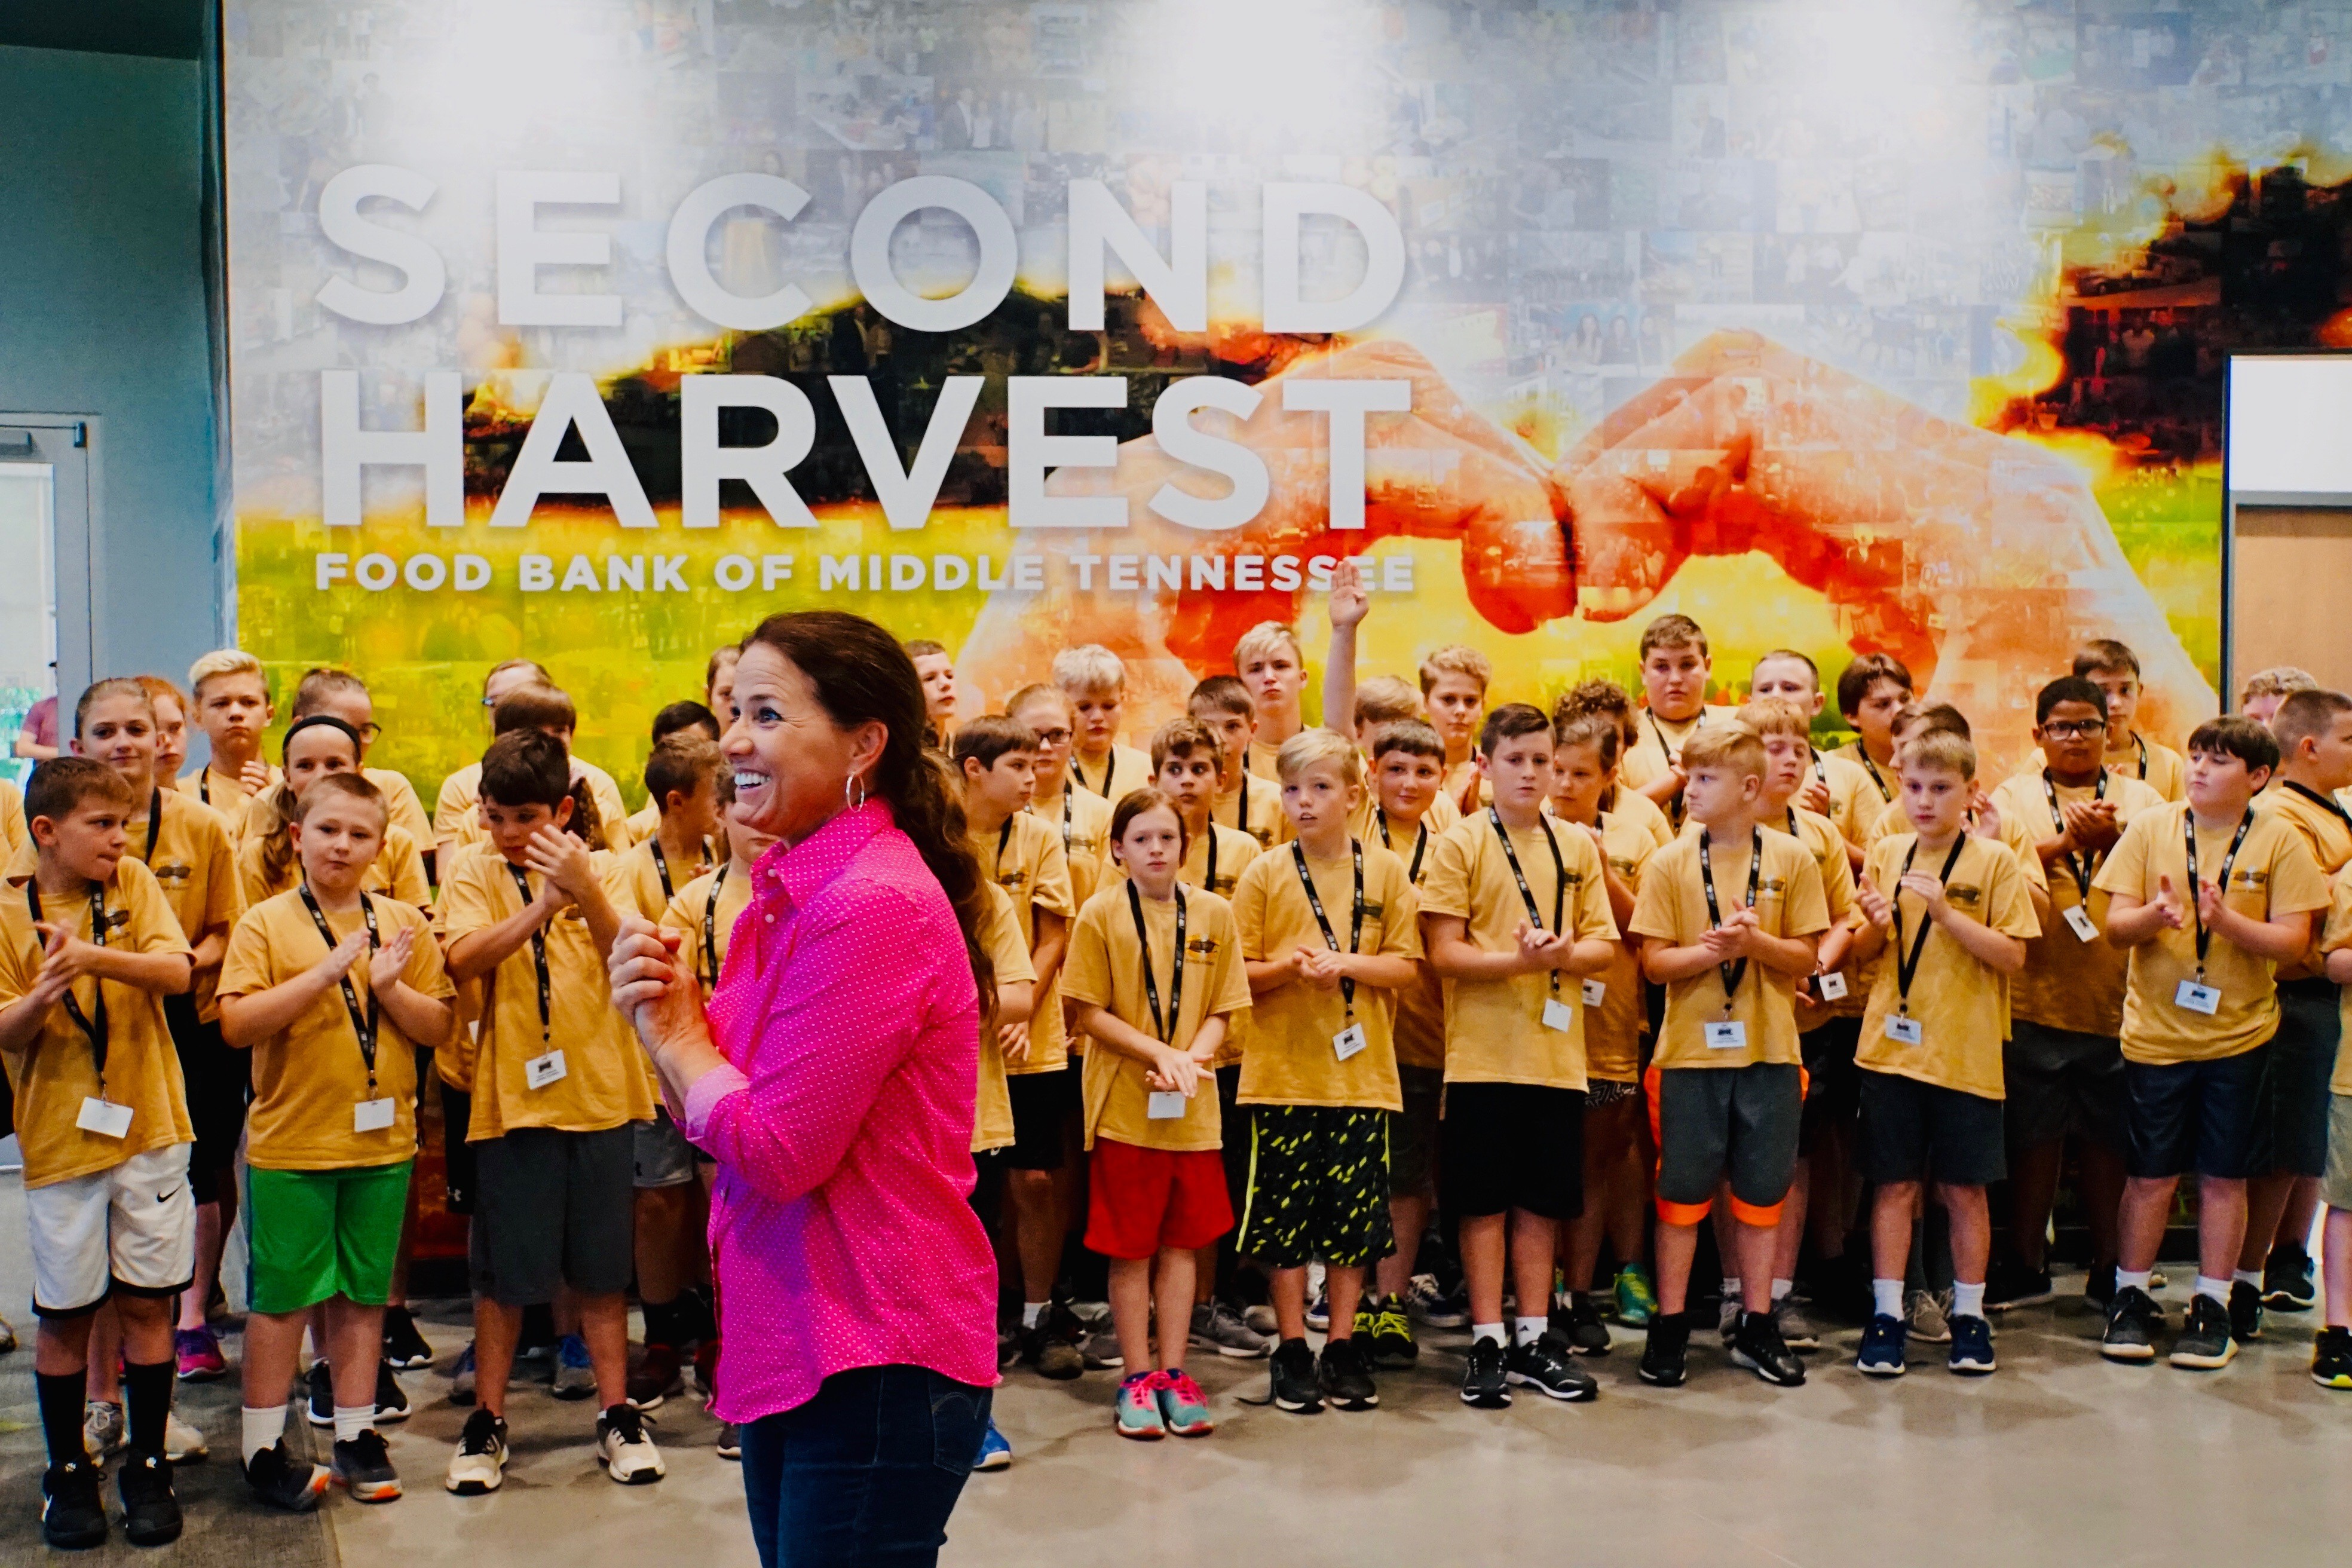 First Lady Maria meets with Tennessee Highway Patrol Junior Cadets at Second Harvest as part of their academy community service project